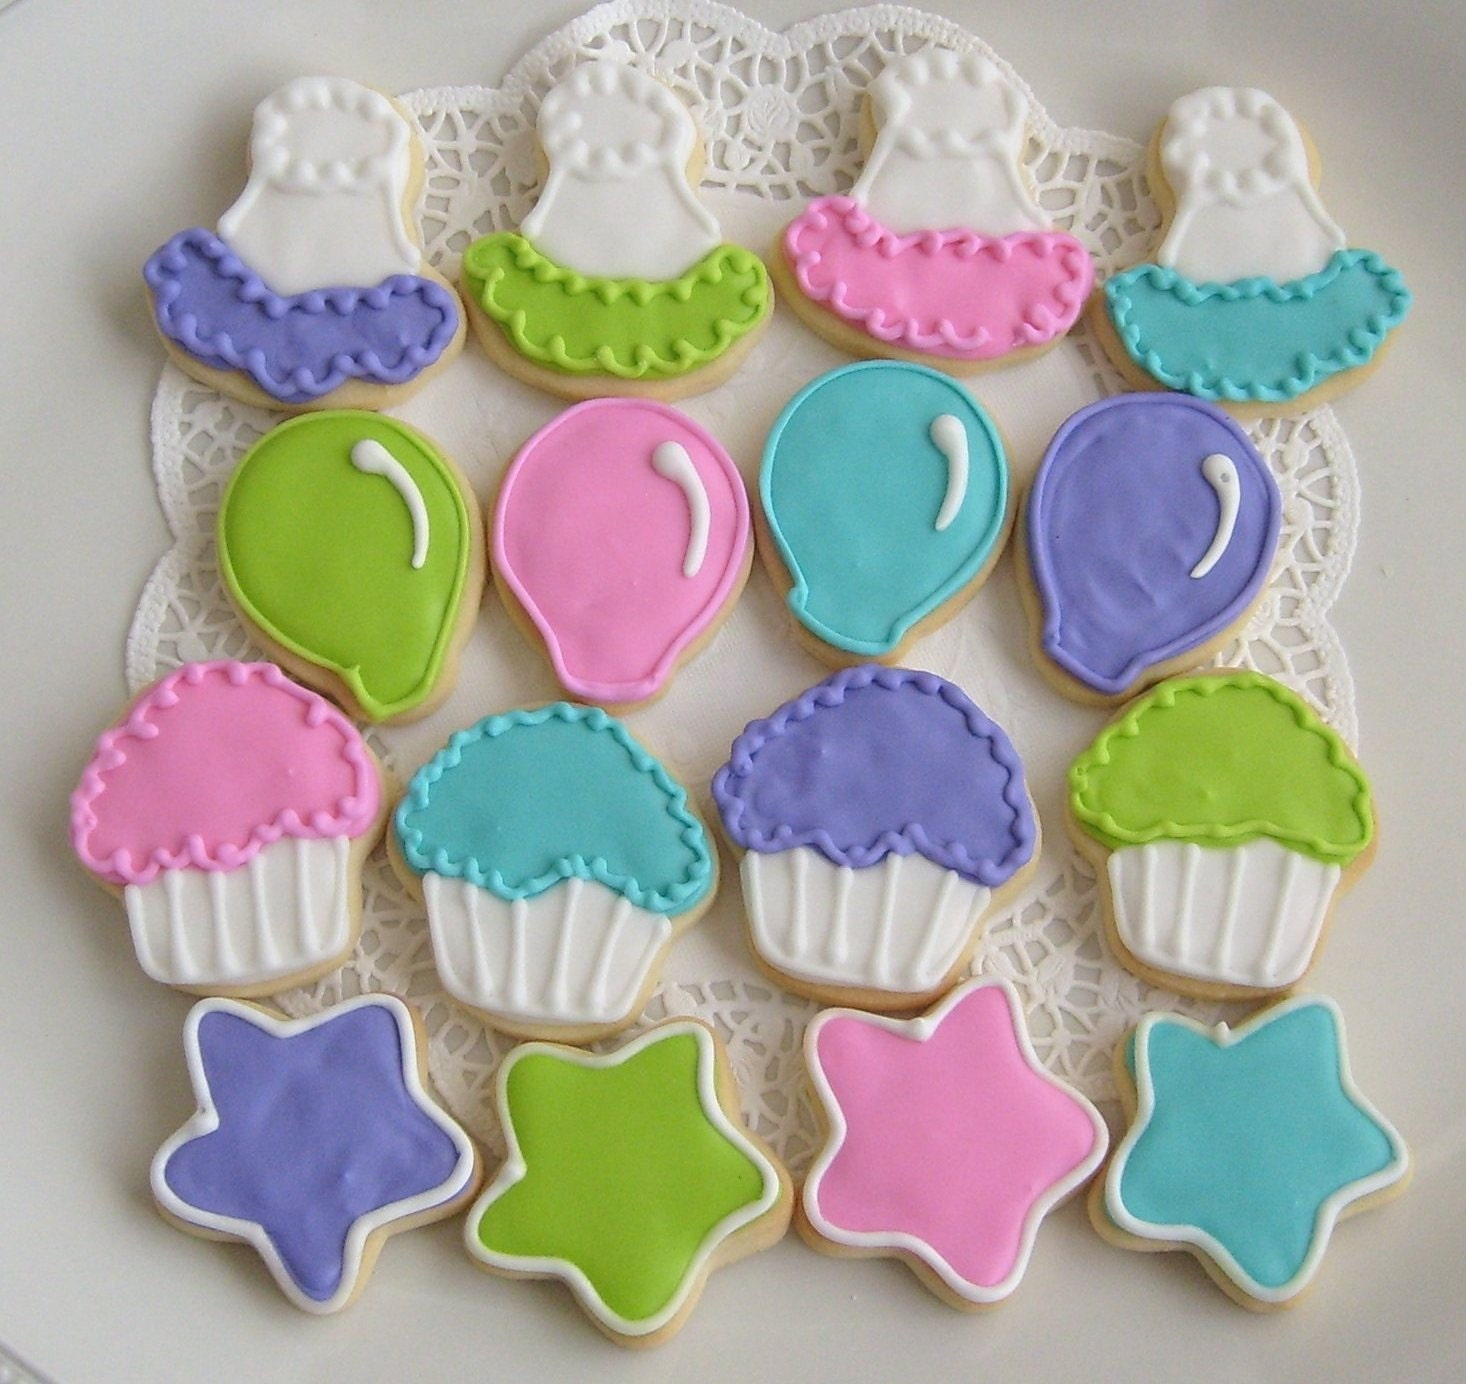 Mini Birthday Decorated Cookies Birthday Cookie By Lorisplace